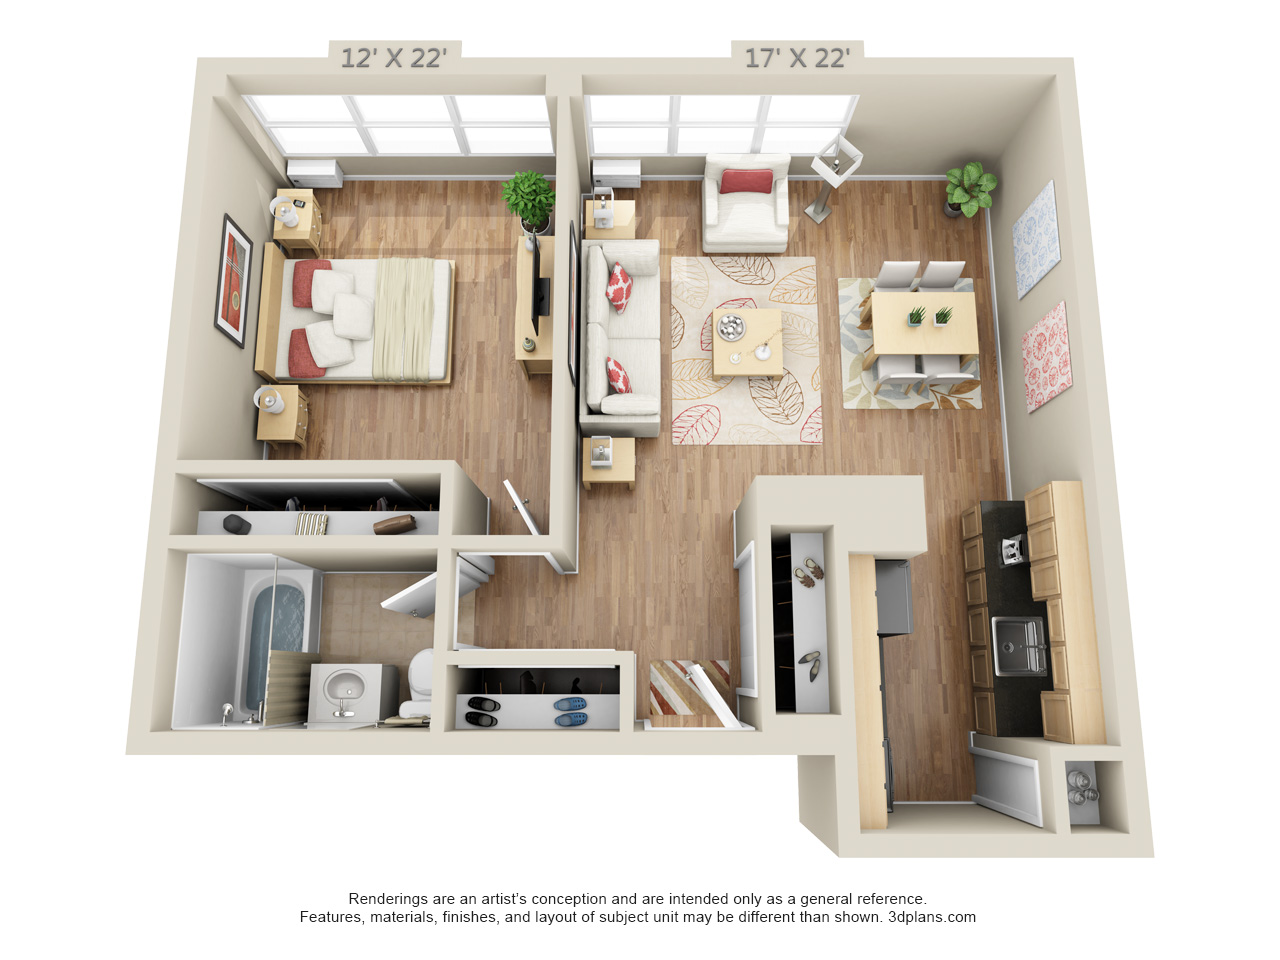 One Bedroom Apartments In St Louis Mo See Floor Plans And Pricing City View Apartments In